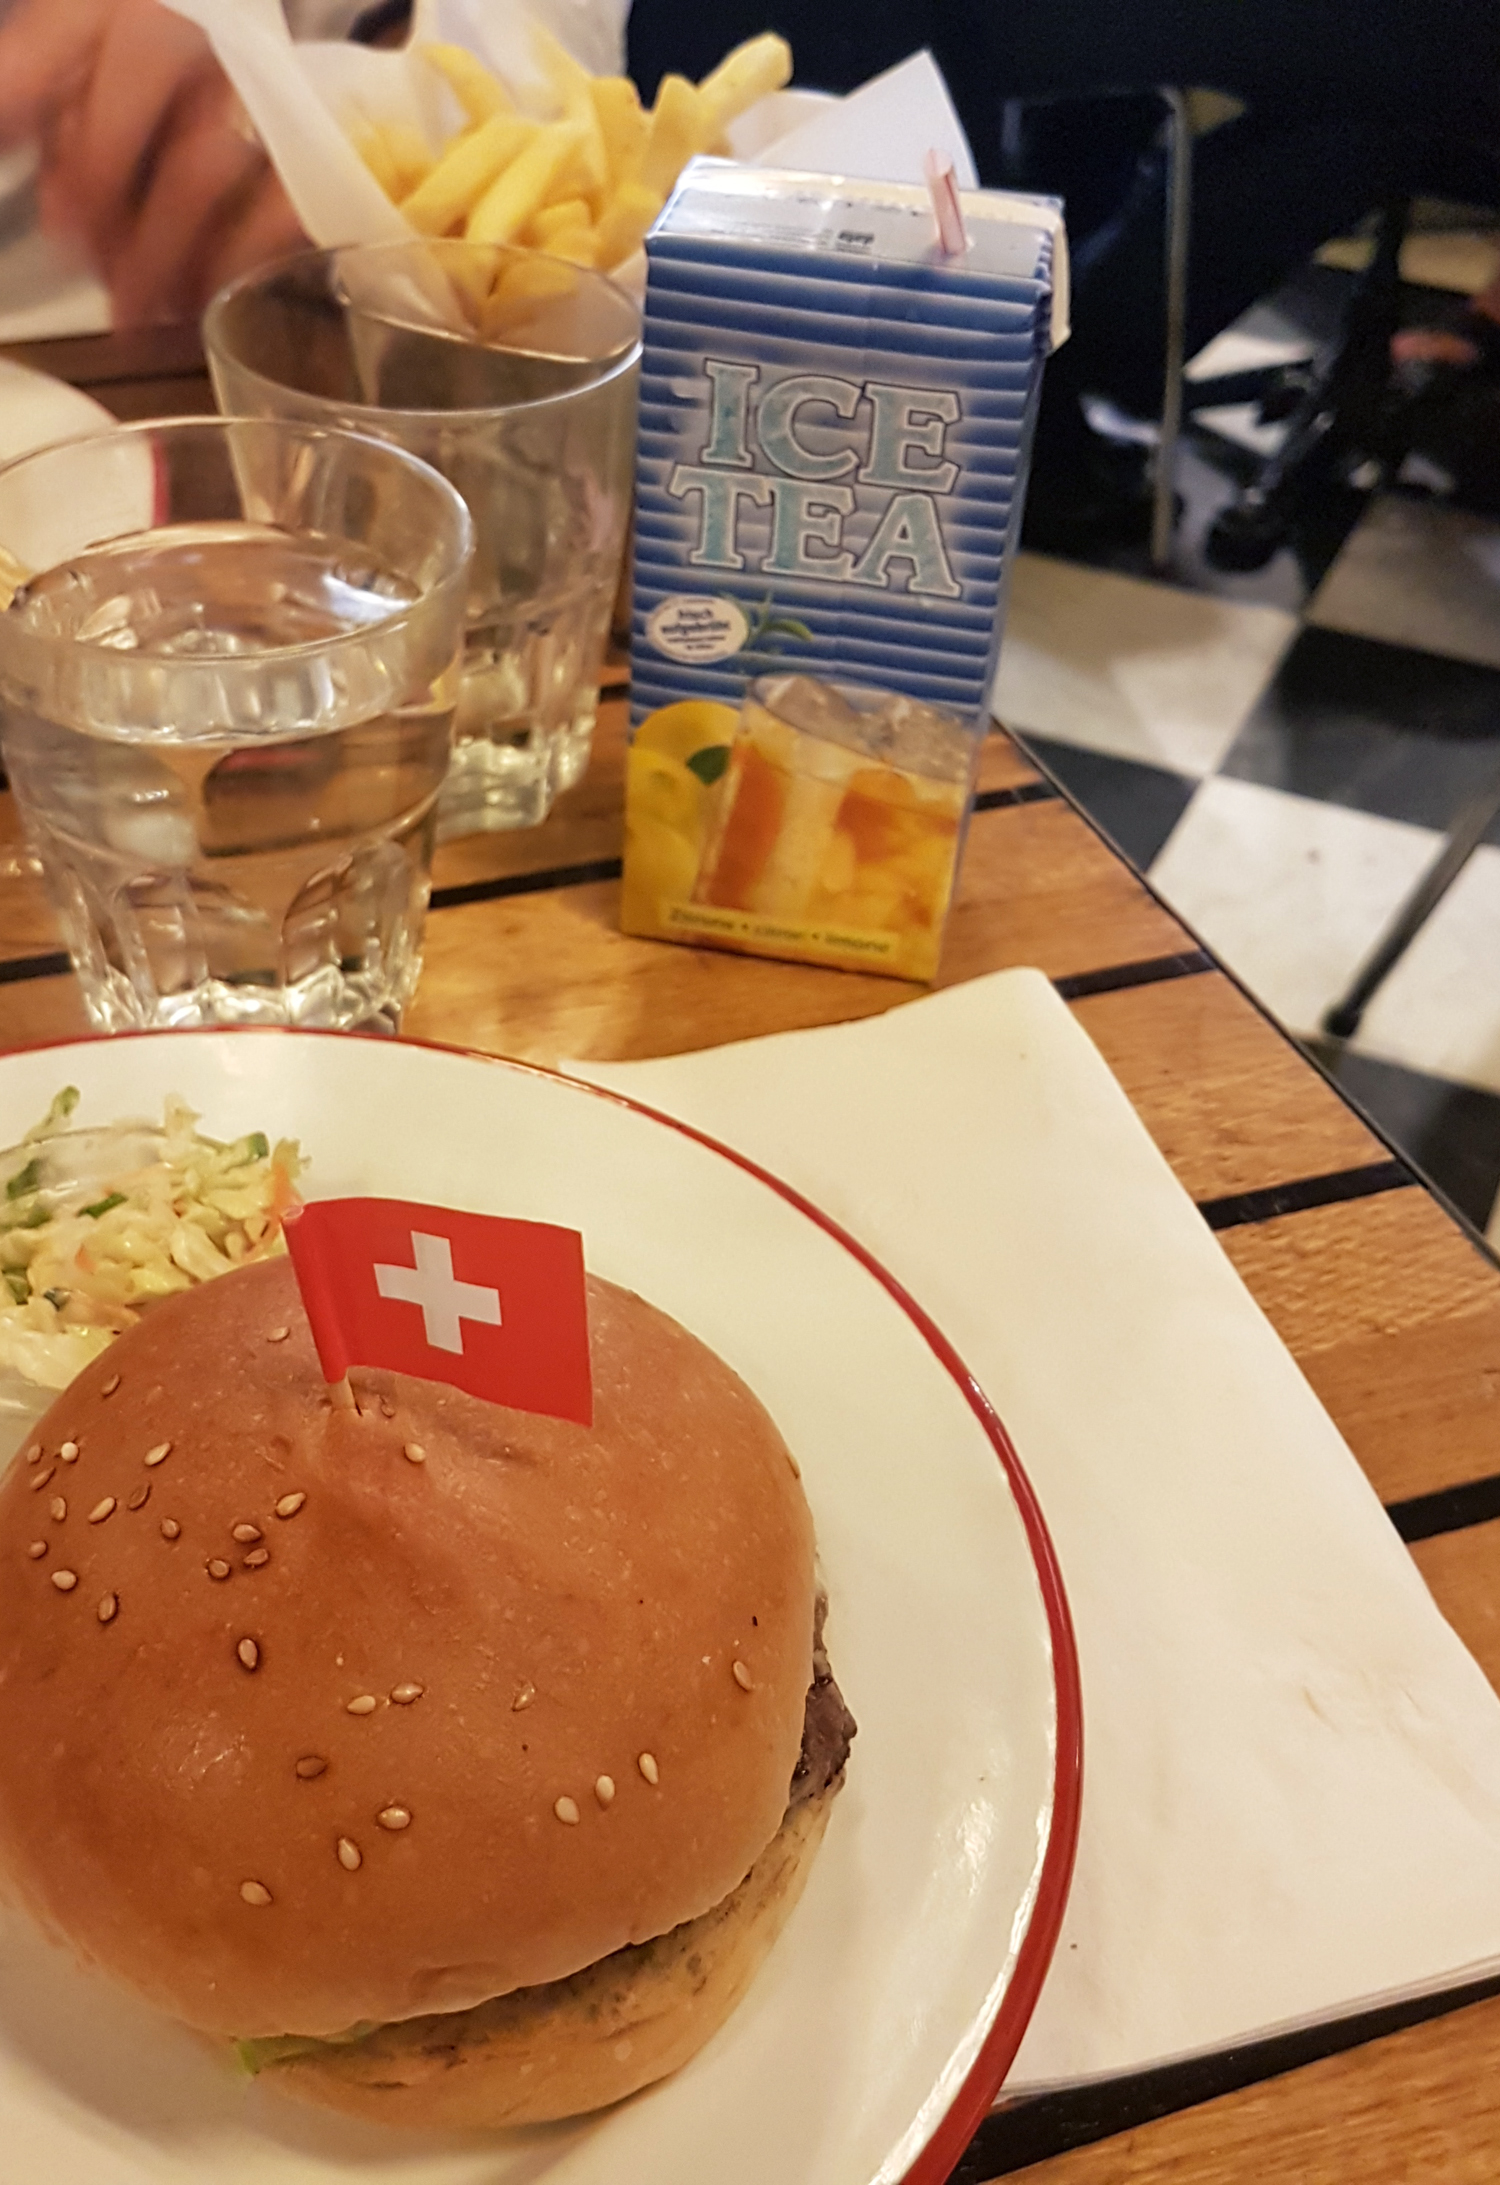 mercredie-blog-mode-geneve-lifestyle-geneva-swiss-blogger-blogueuse-bloggeuse-food-restaurants-geneve-meilleurs-restos-avis-the-hamburger-foundation-burger-meilleur-burger-best2